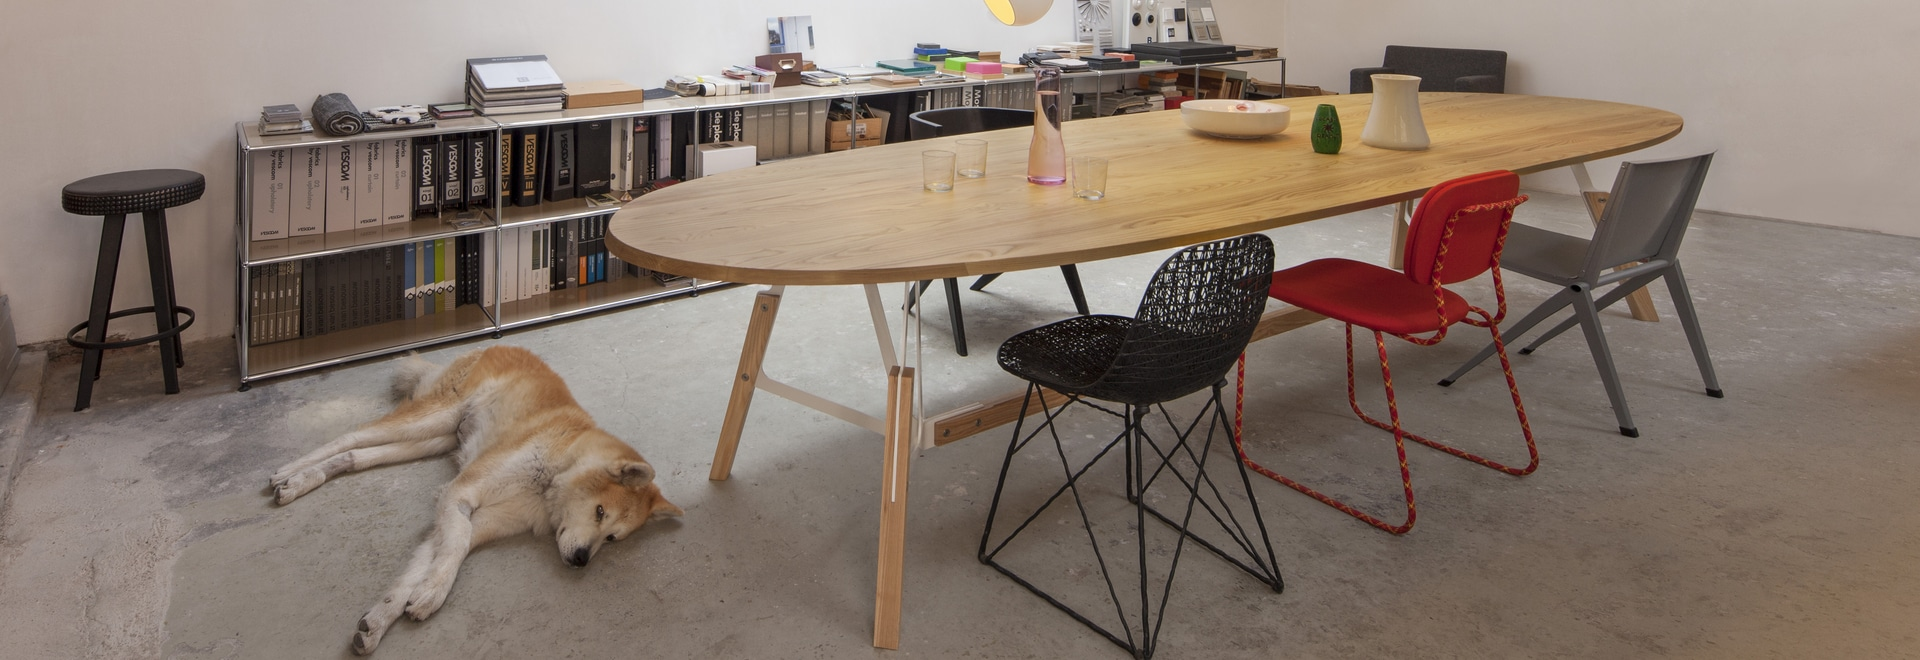 Stammtisch table by Alfredo Häberli for Quodes